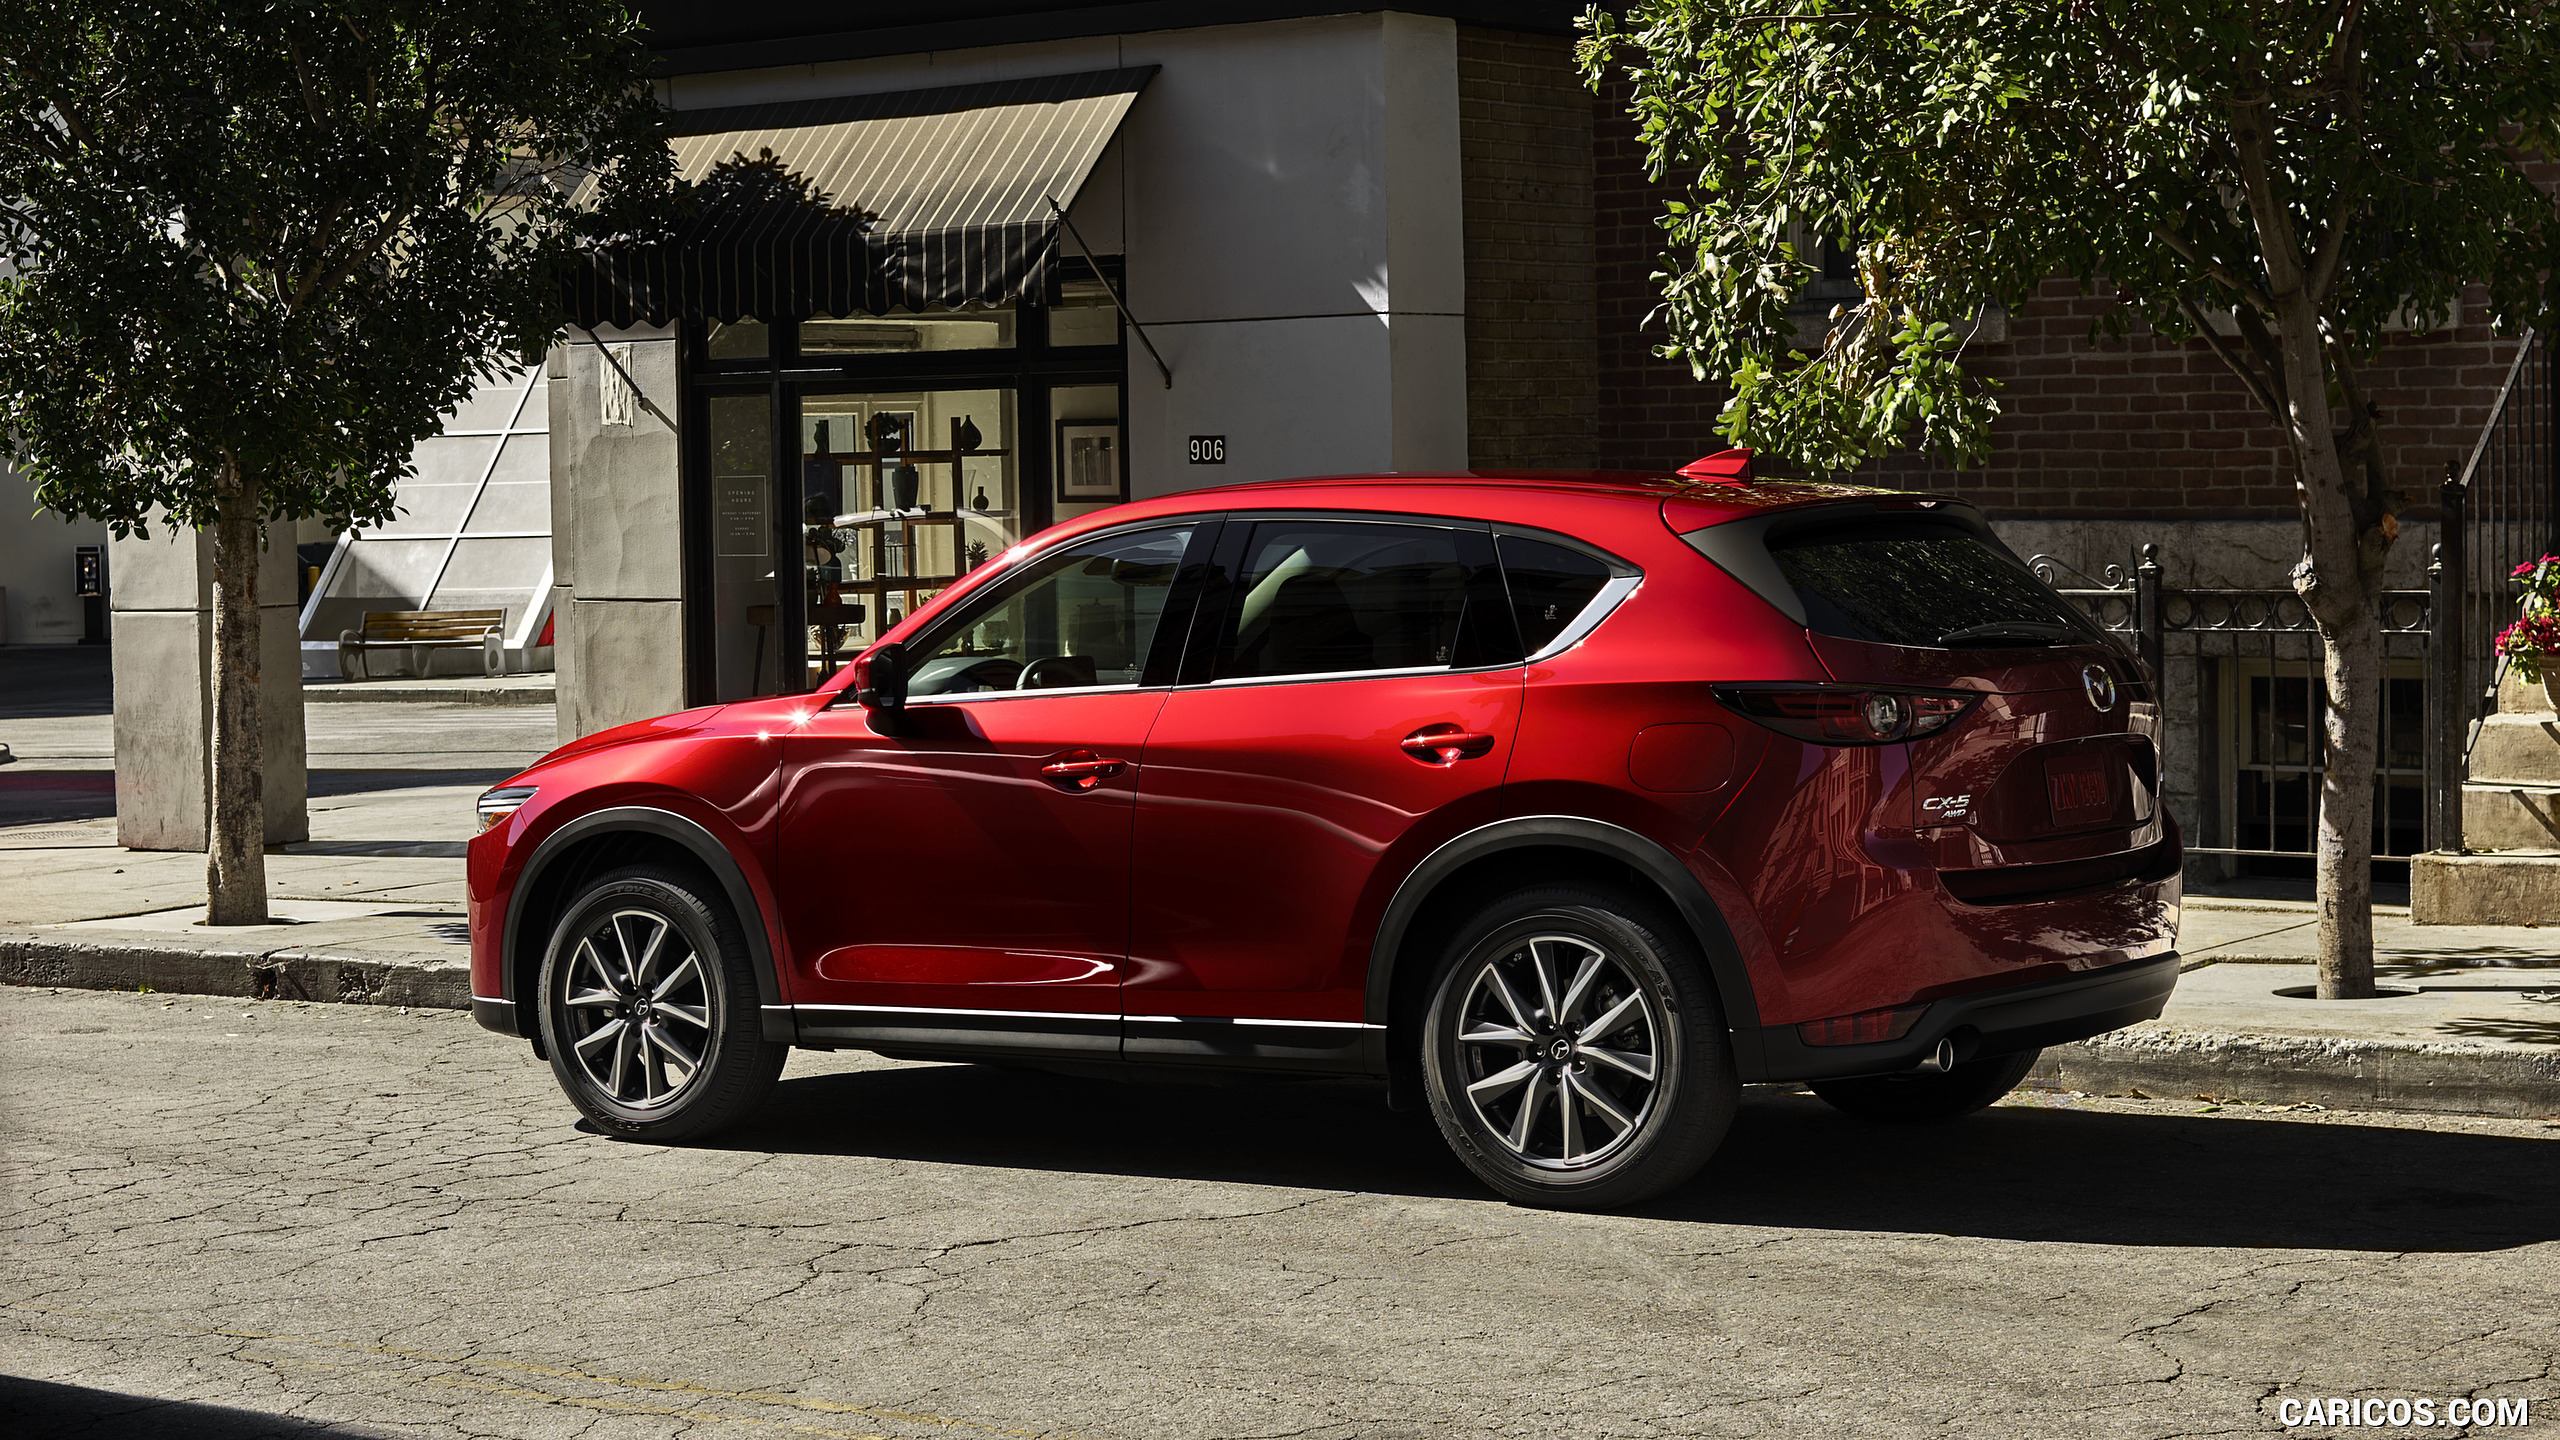 2560x1440 - Mazda CX-5 Wallpapers 16